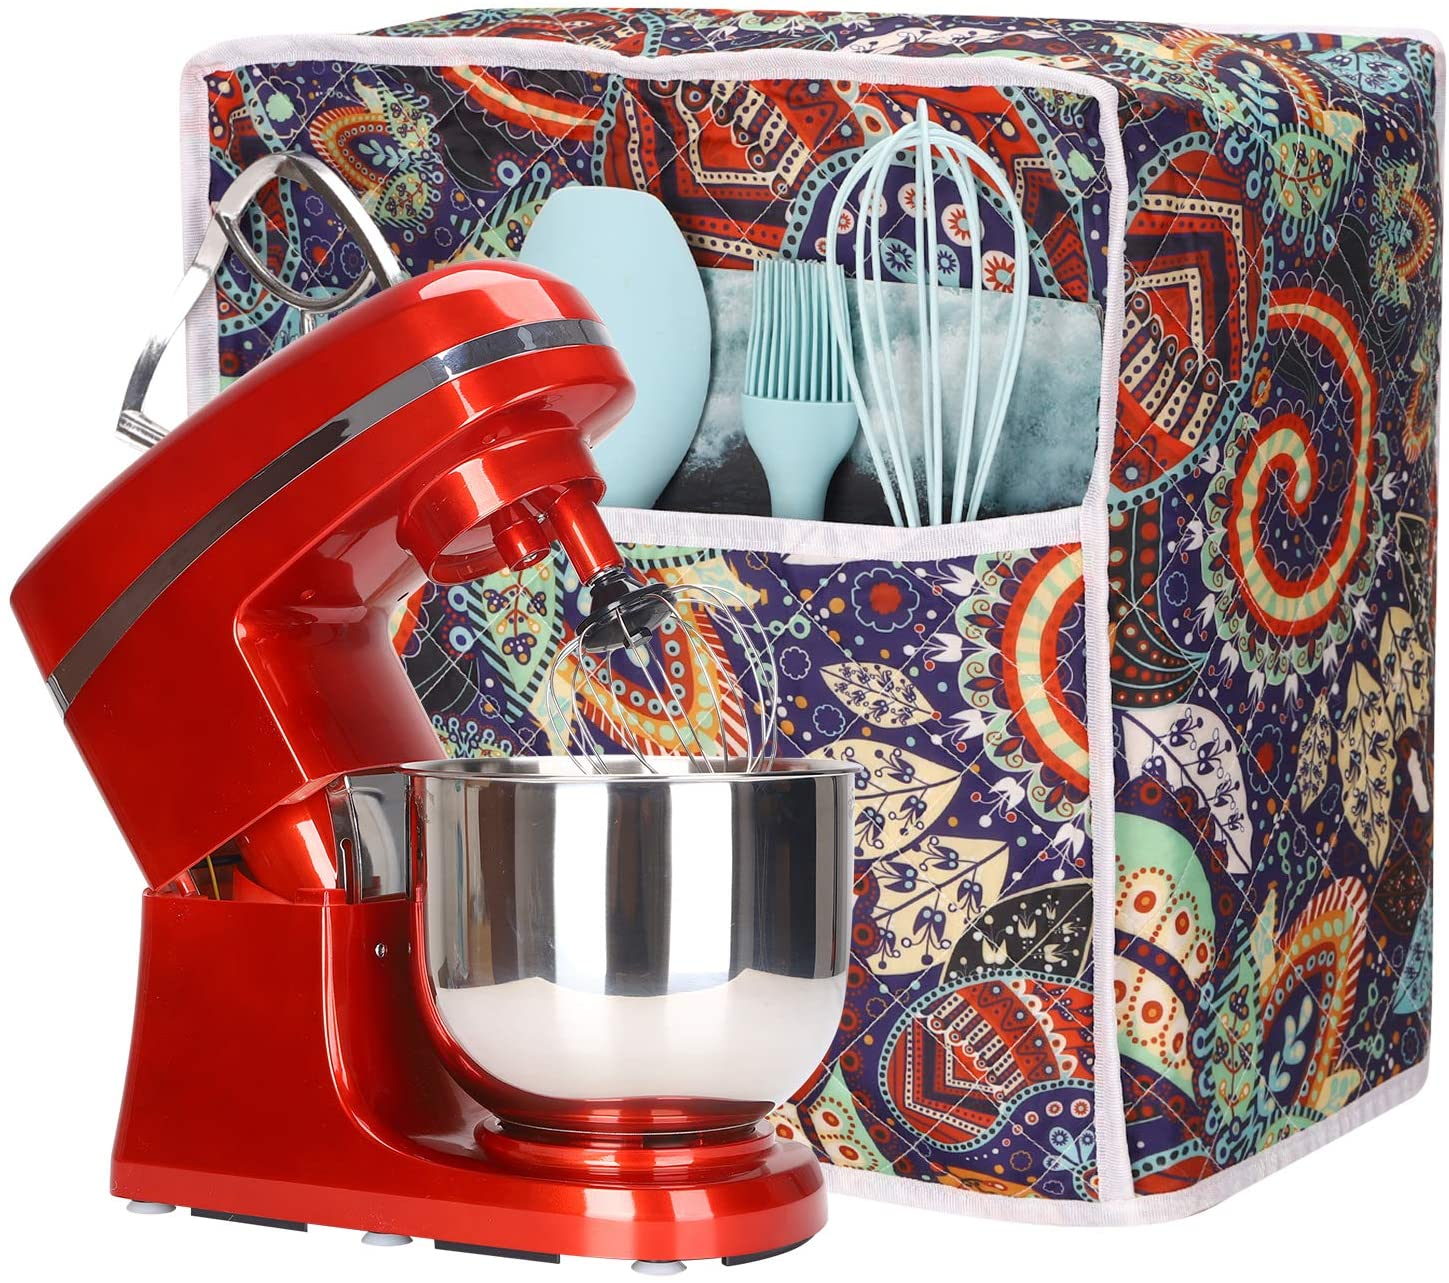 Visible Kitchen Aid Mixer Cover, Stand Mixer Protector Cover with Pockets, 5-8 Quart Mixer Dust Cover Compatible with Kitchenaid Mixers for All Tilt Head & Bowl Lift Models